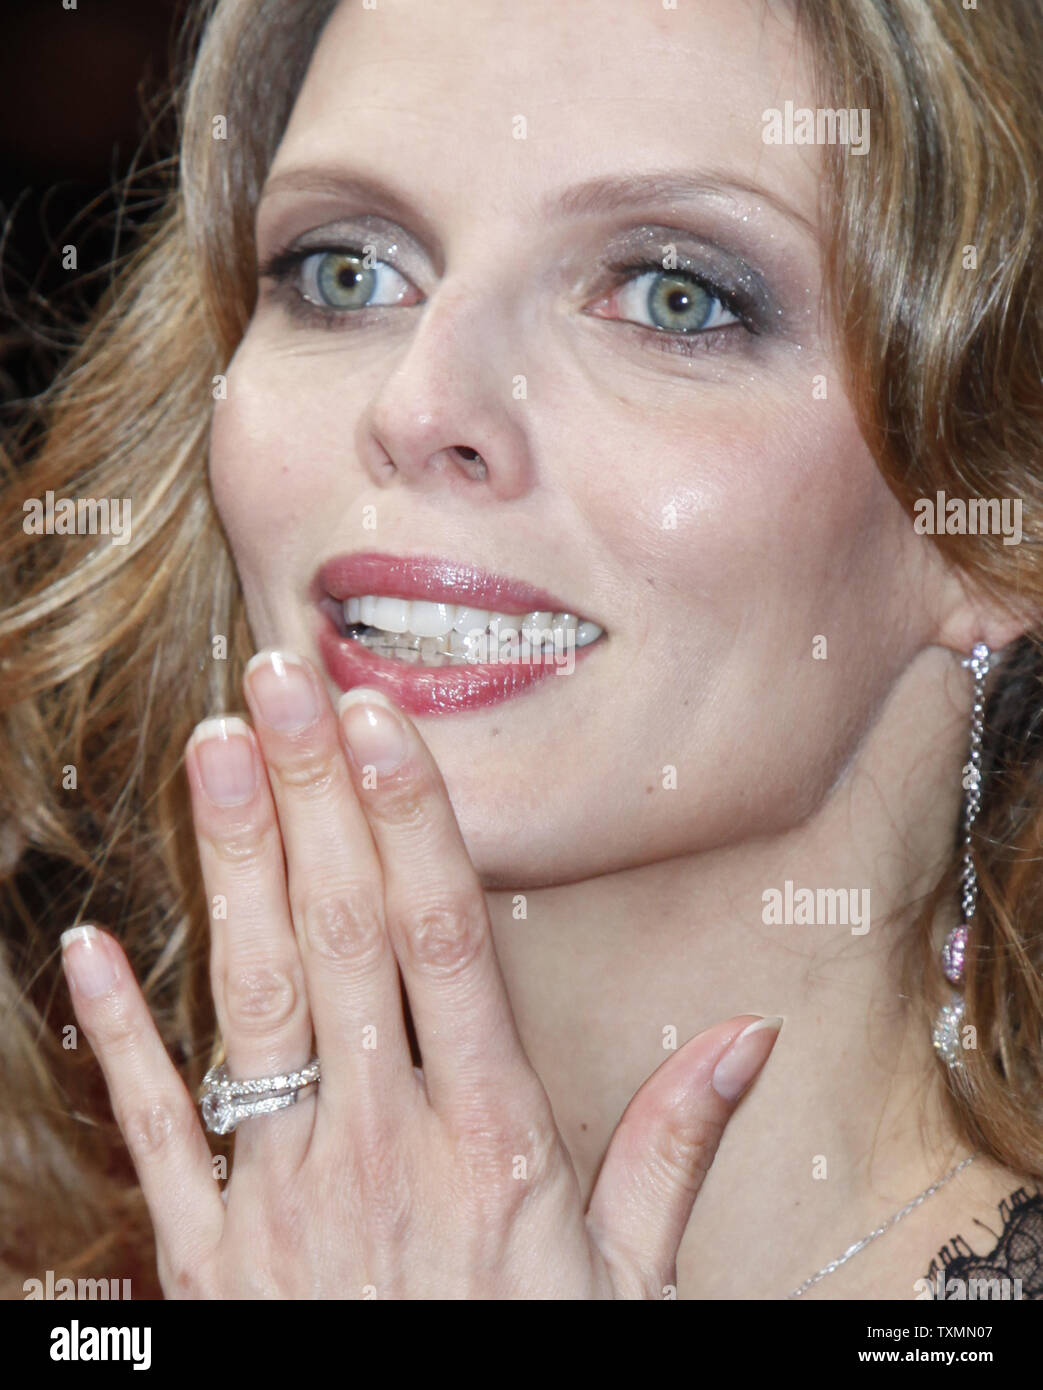 Miss France 2002 High Resolution Stock Photography And Images Alamy